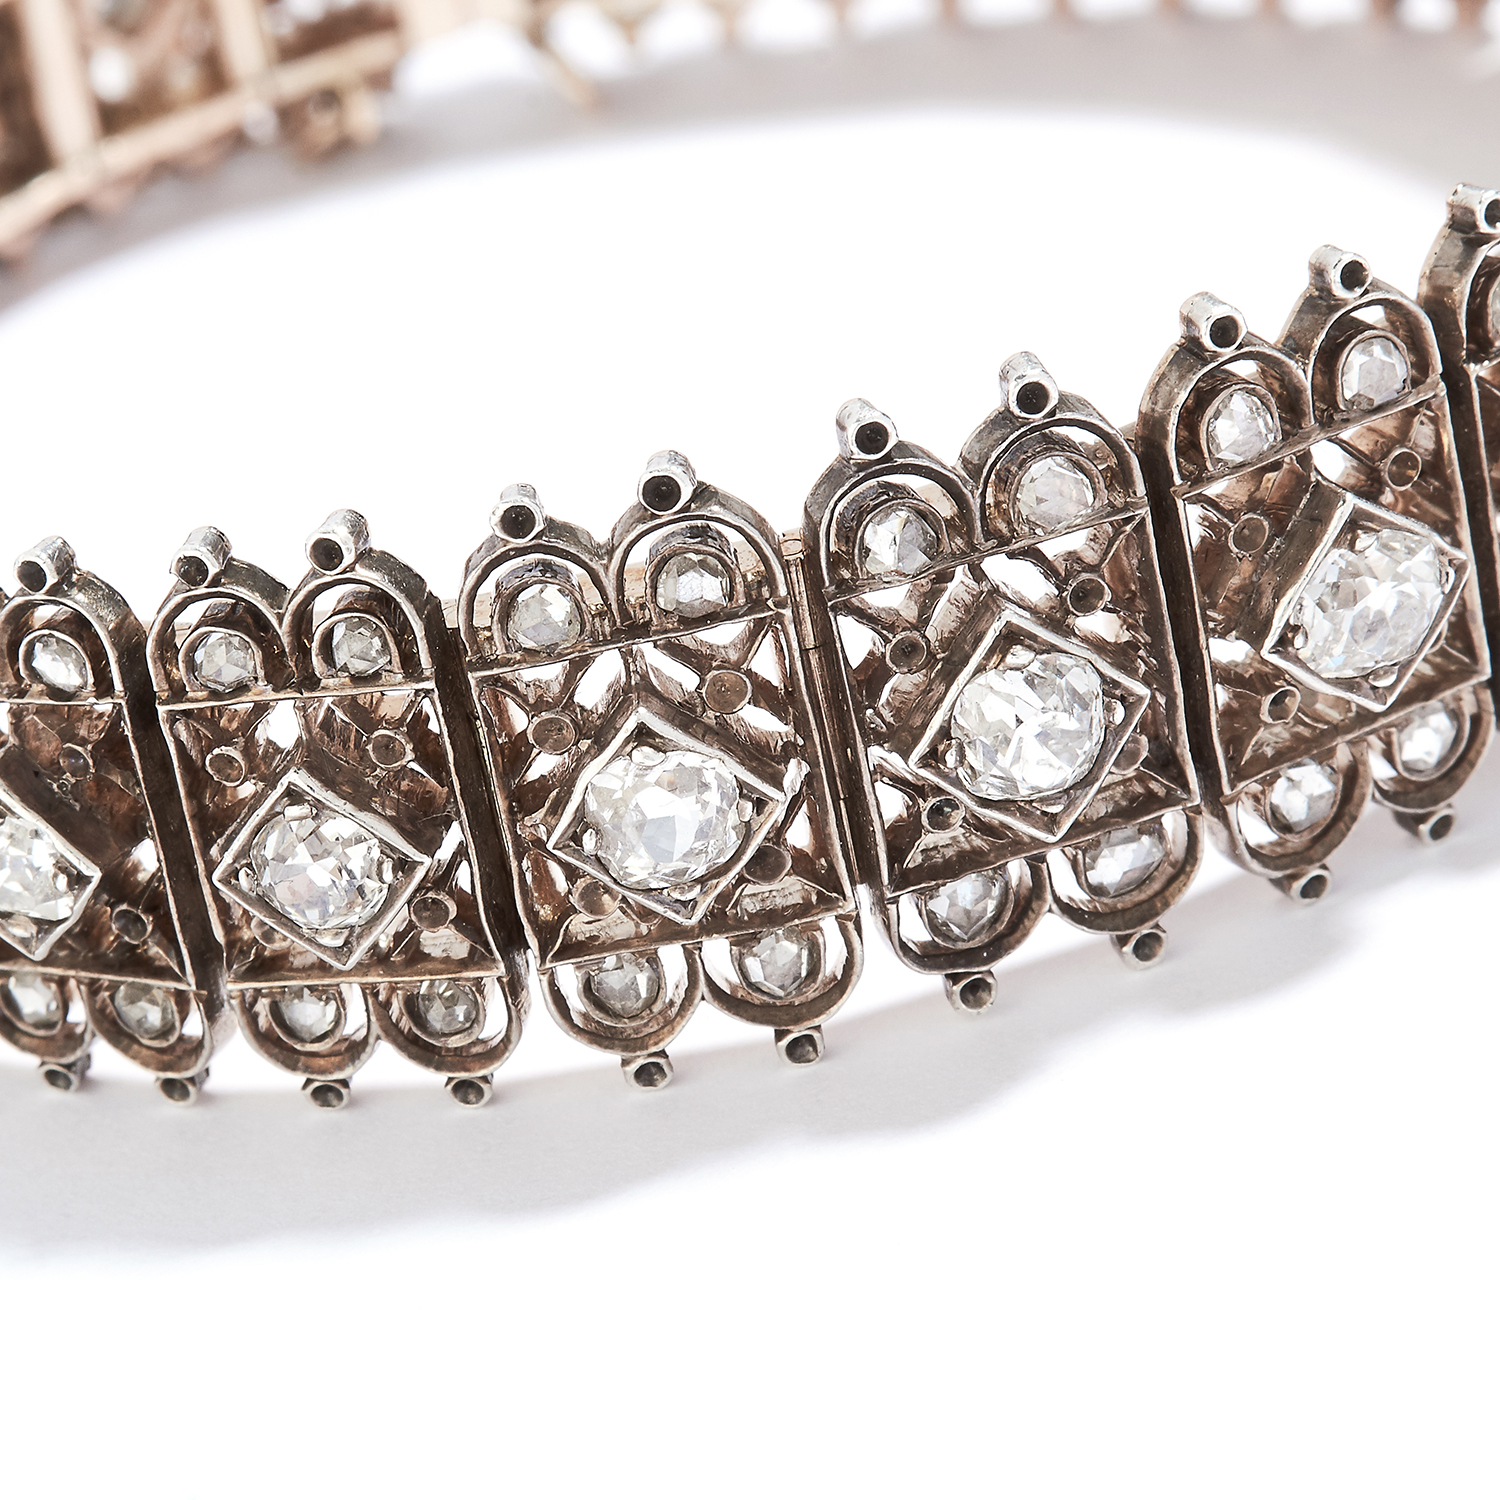 Los 28 - ANTIQUE DIAMOND BRACELET in high carat yellow gold, set with a row of old cut diamonds in detailed